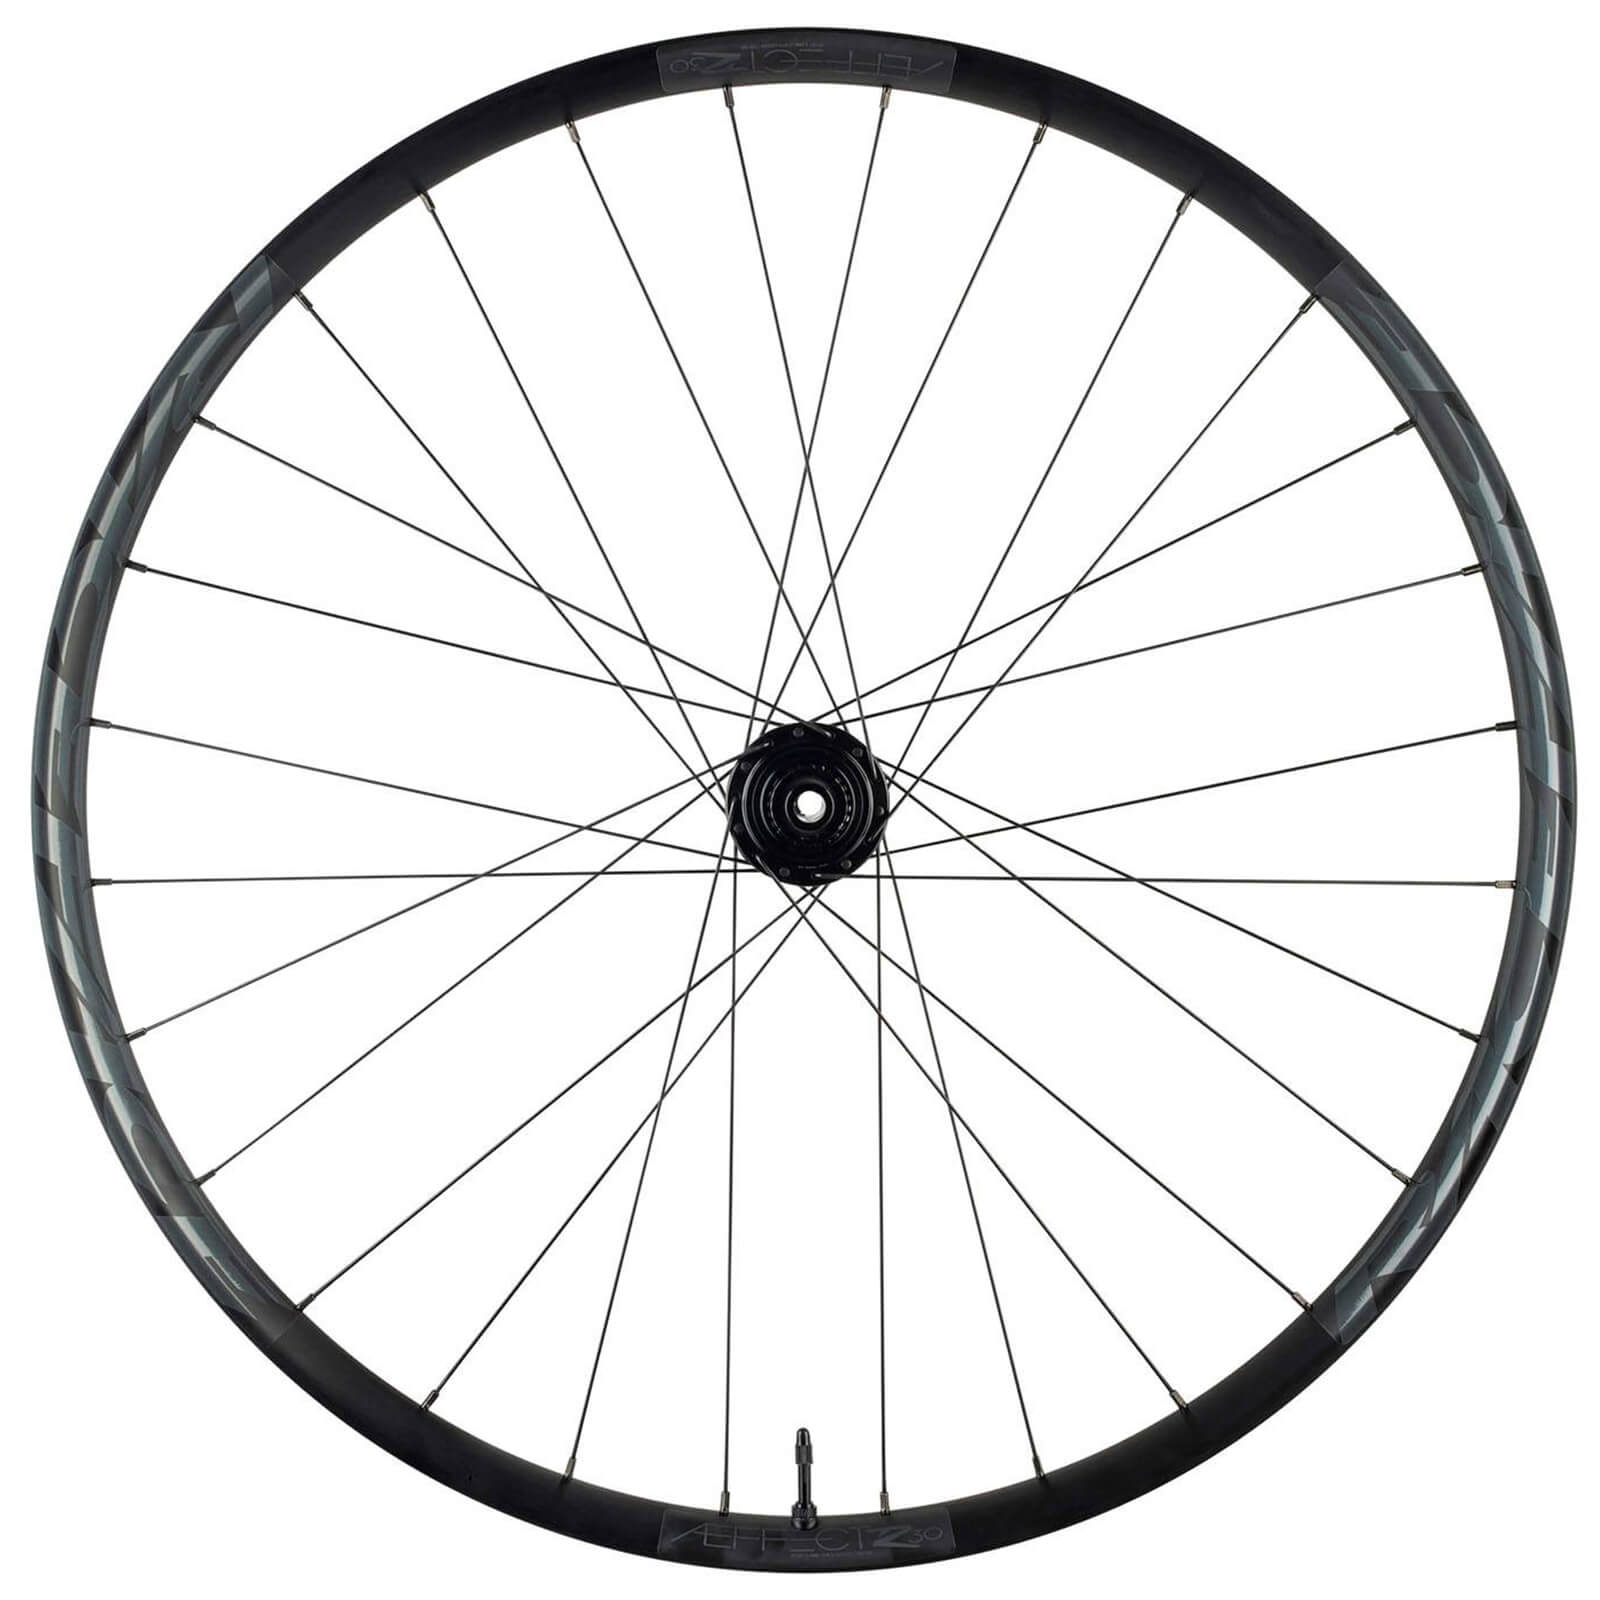 Race Face Aeffect R 30mm MTB Alloy Rear Wheel - Black - 29 Inch/12 x 148mm - Shimano Microspline